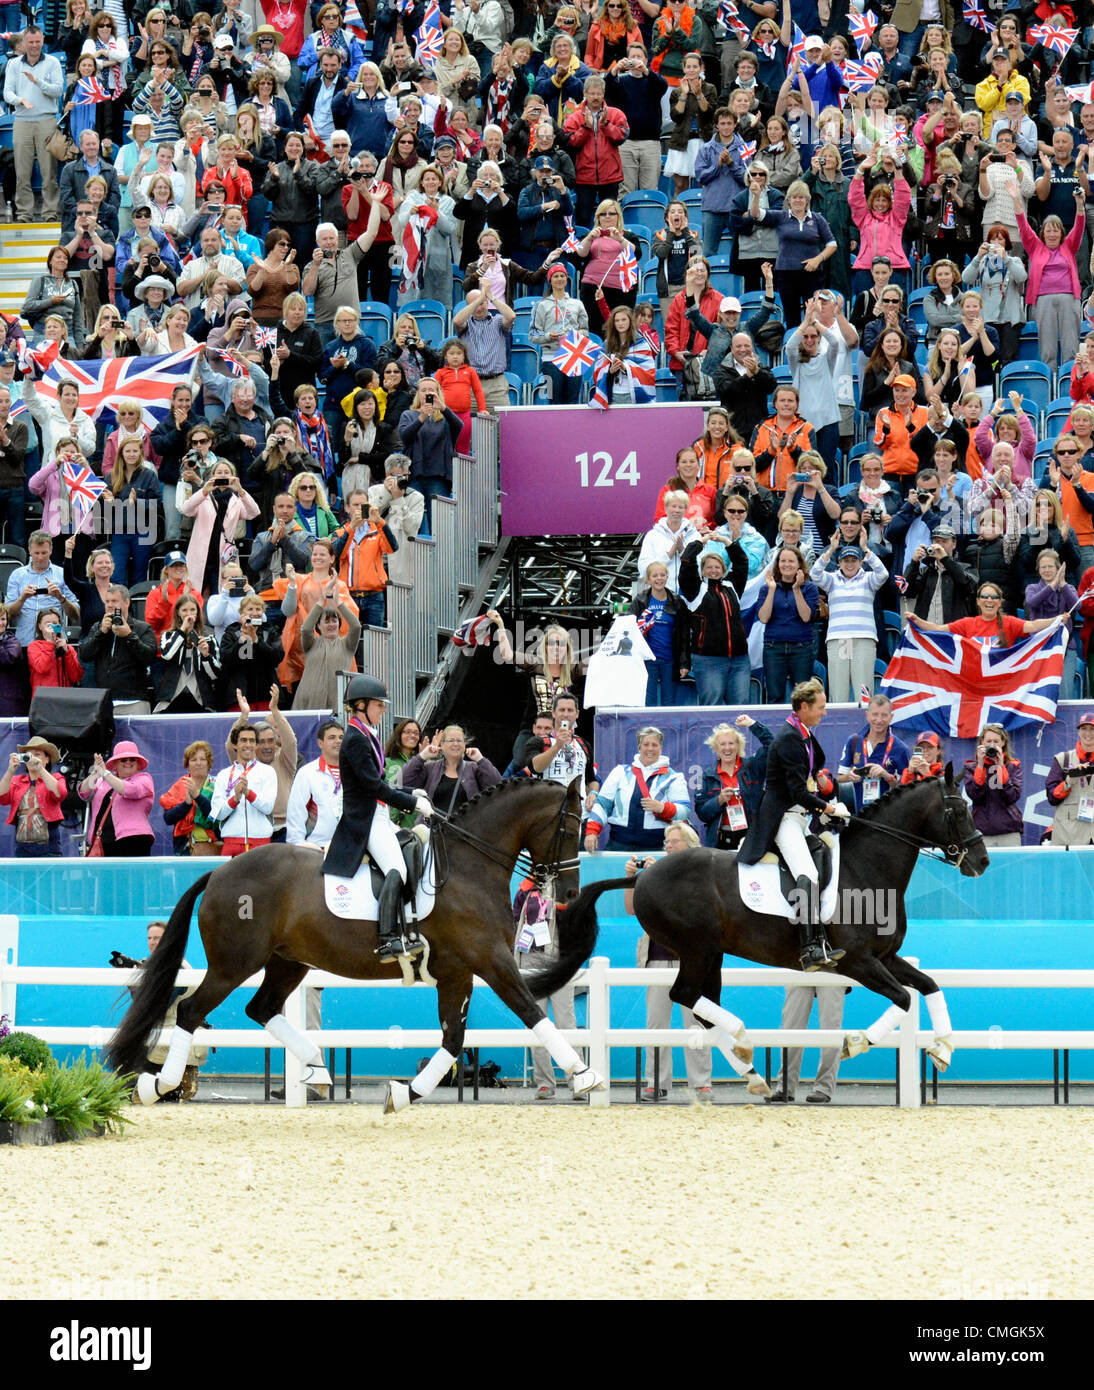 London, UK. 7th August, 2012. Greenwich Park. Olympic Equestrian Team Dressage. Gold medal winners Great Britain Stock Photo